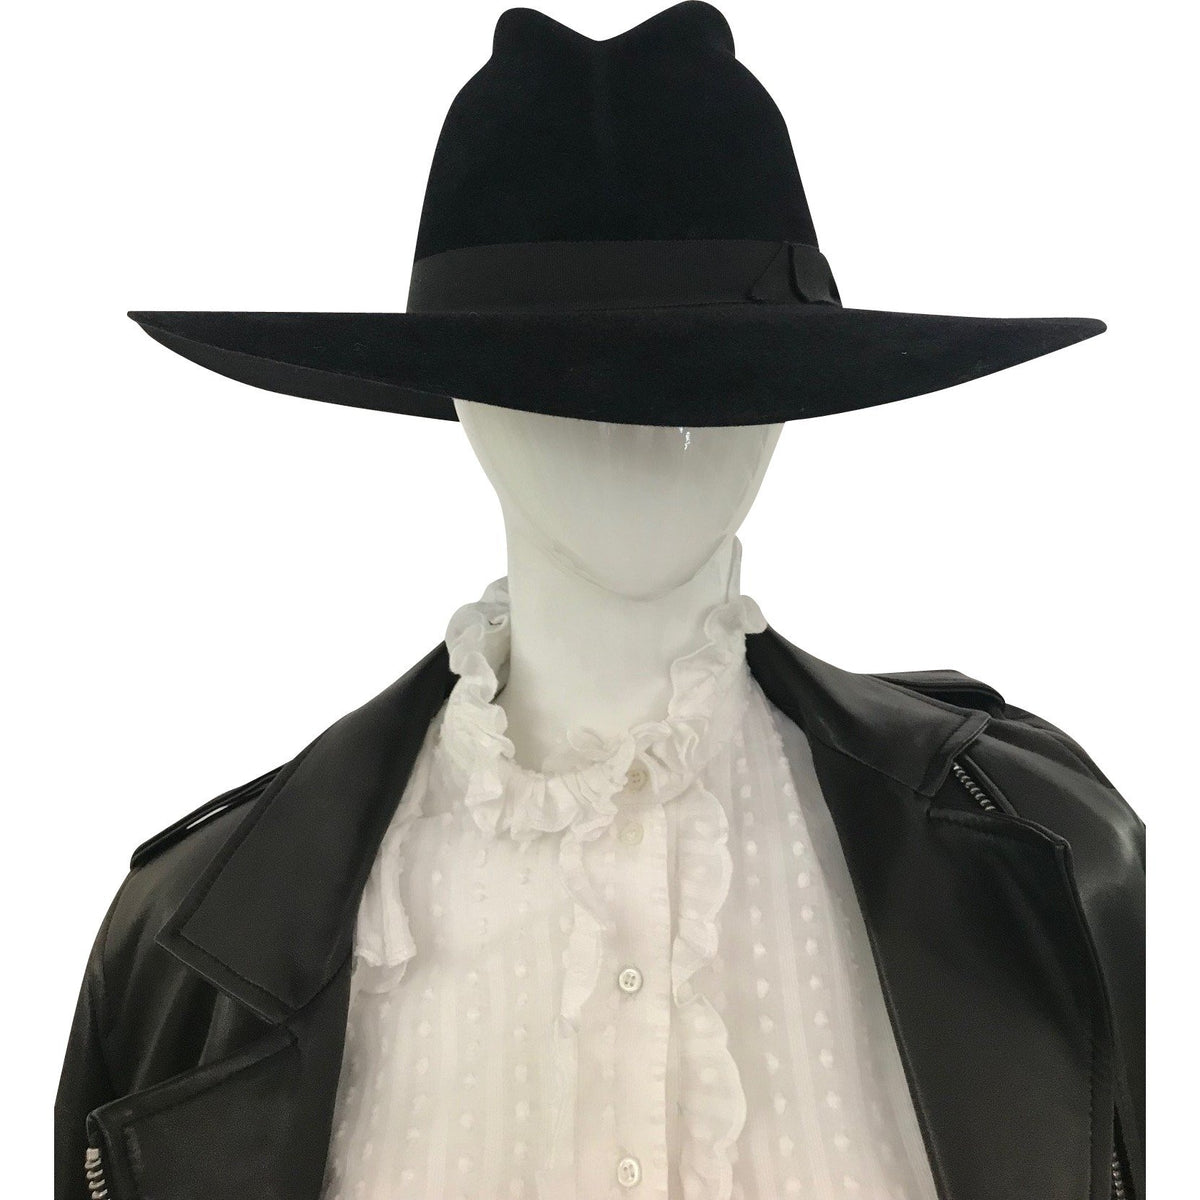 3a4fe62570007 Shop for Gladys Tamez Millinery Bianca Hat at Bonito Silicon Valley